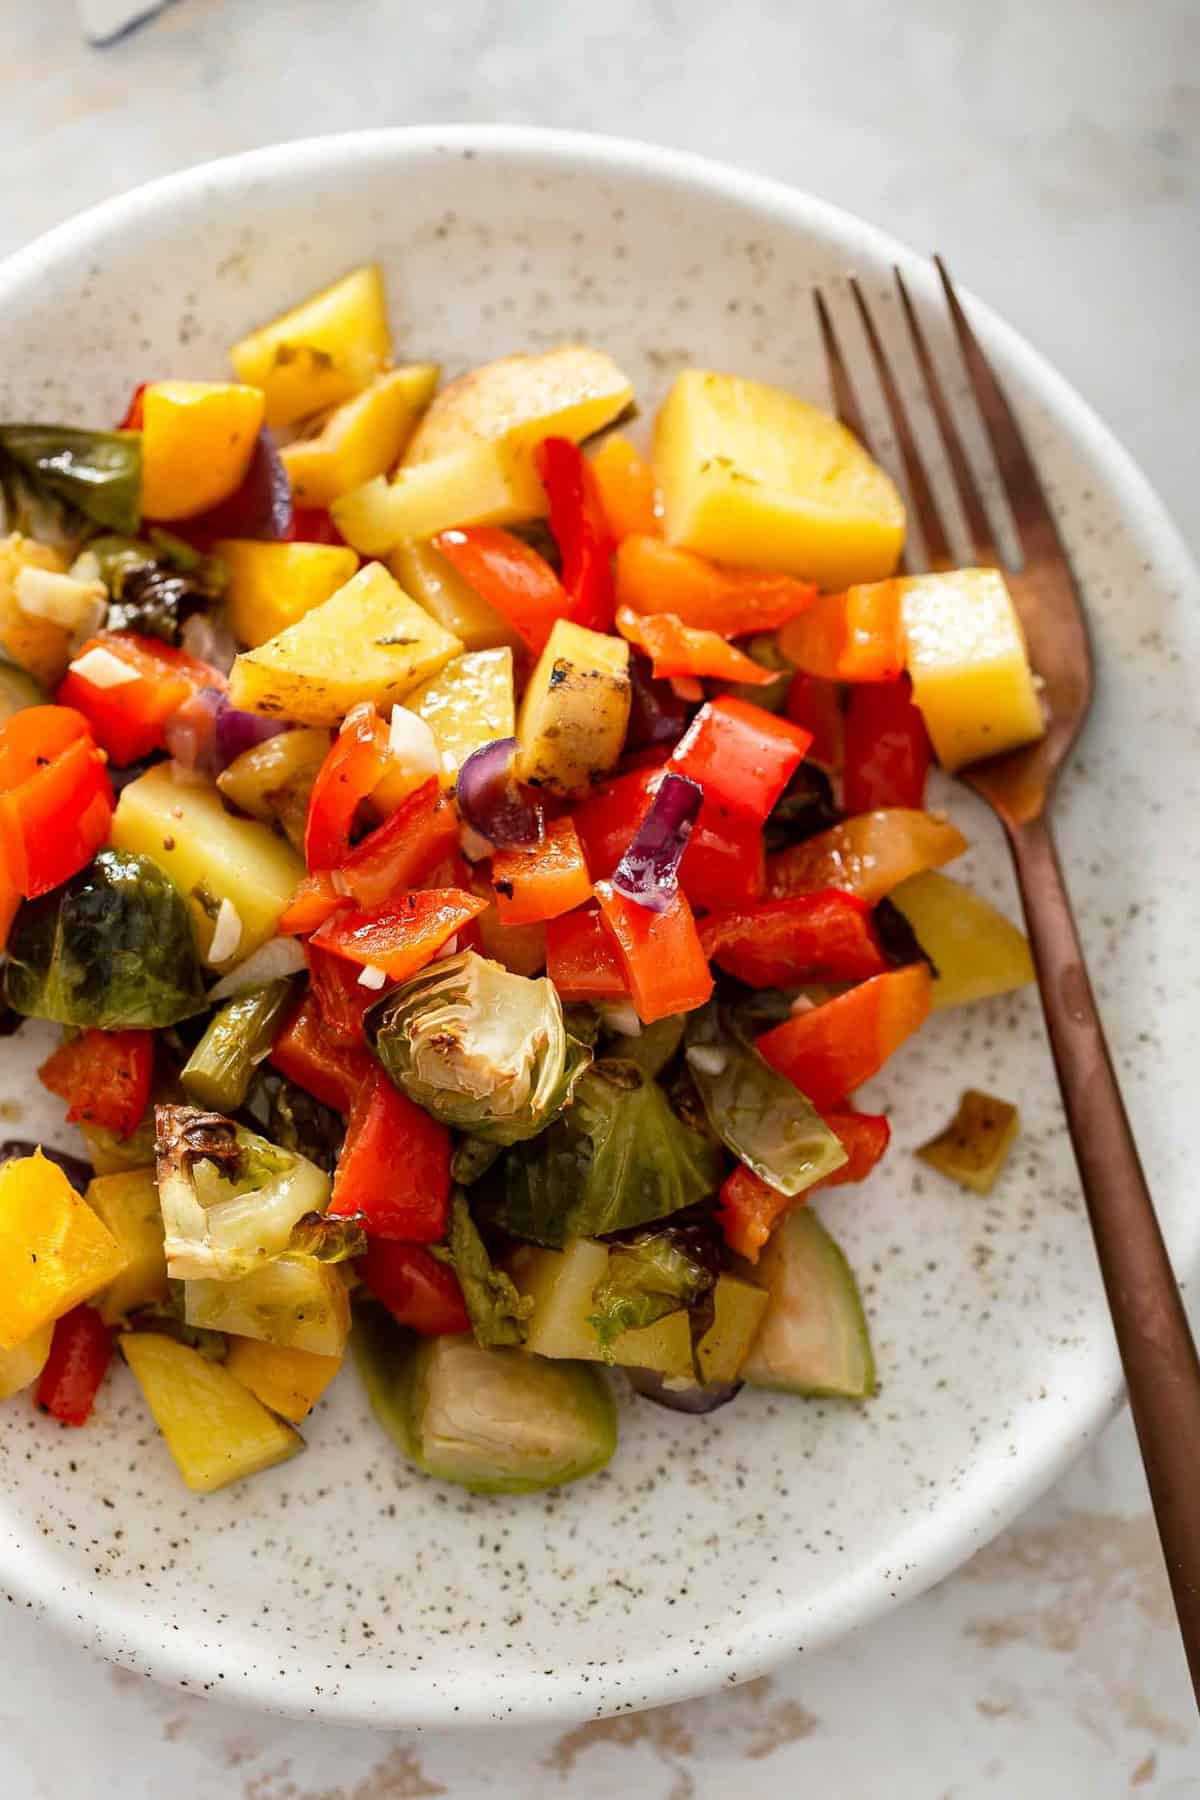 cooked brussels sprouts, squash, potatoes on a plate